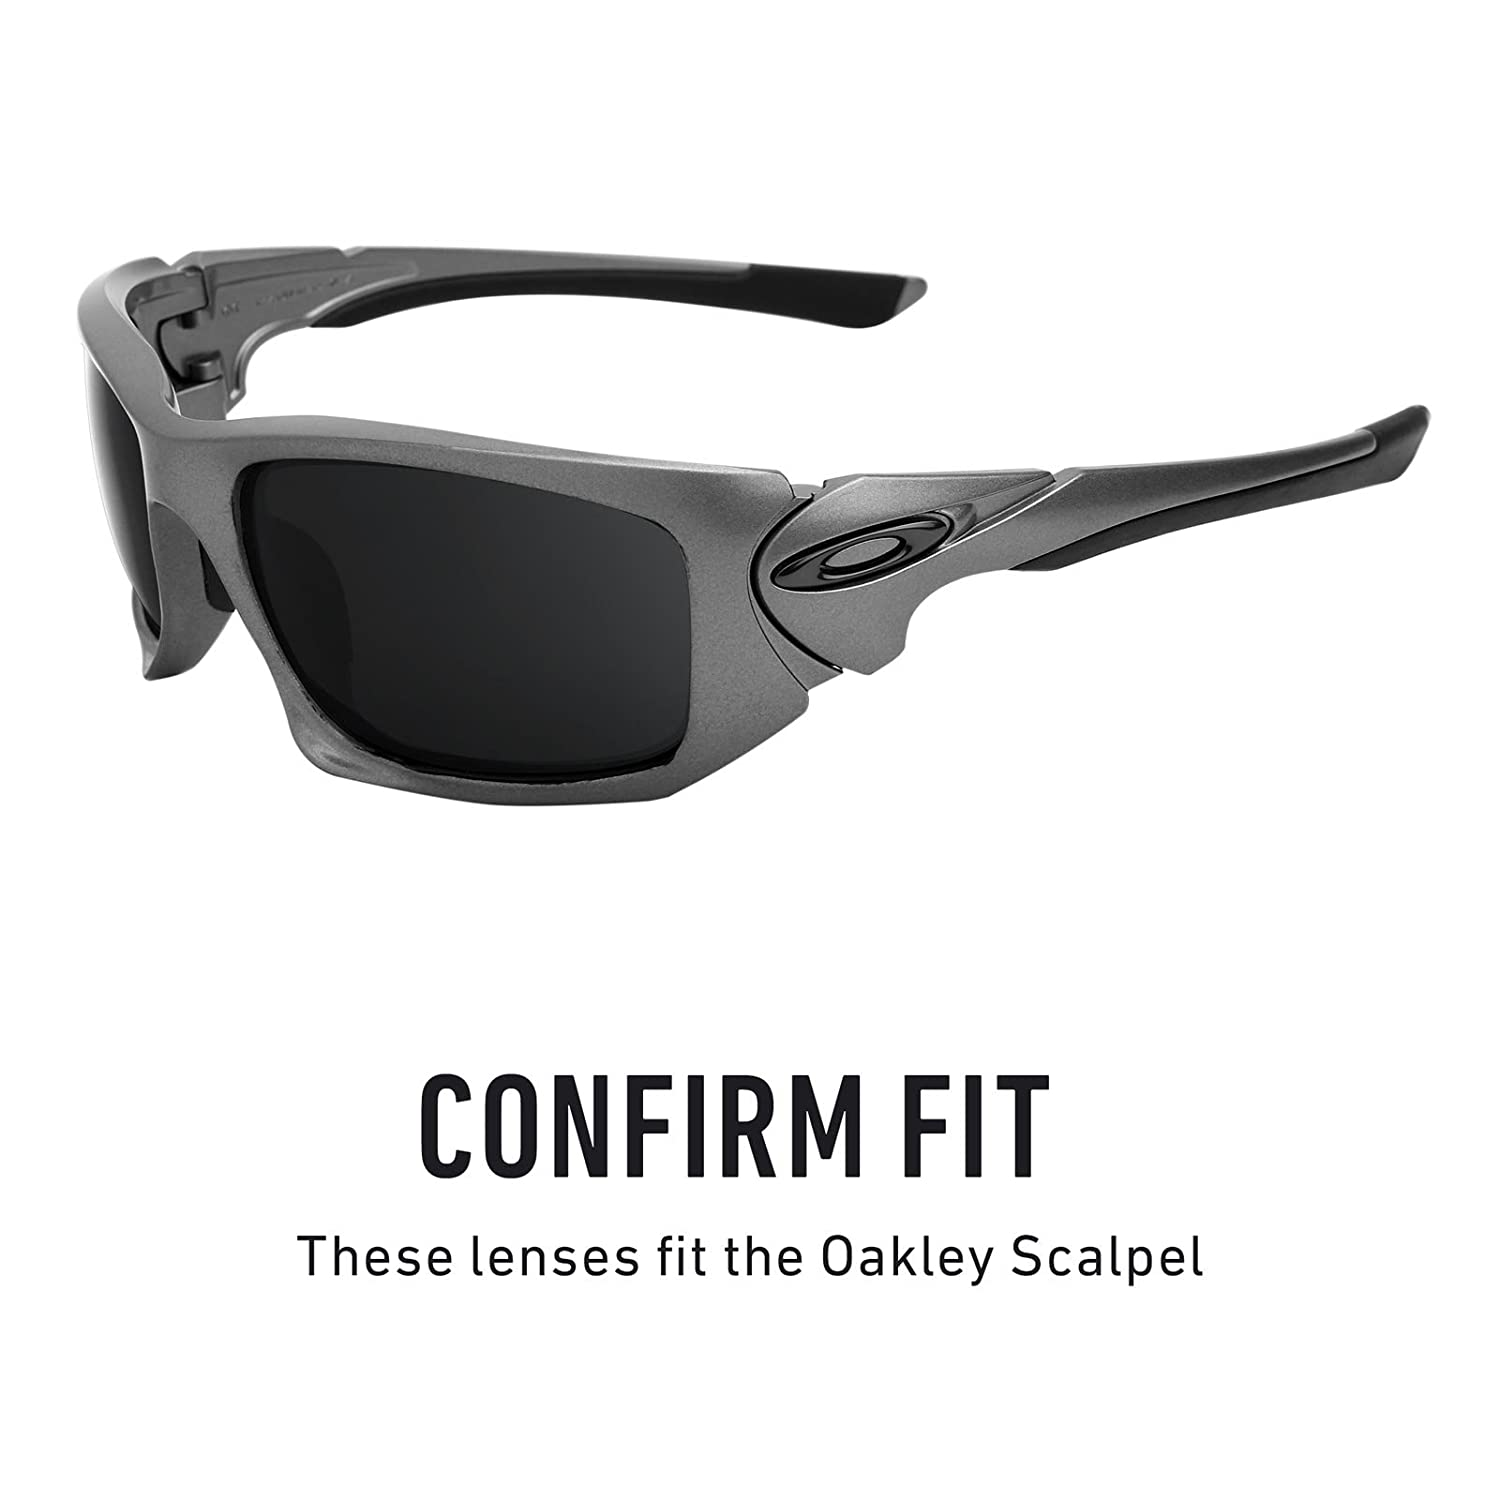 a8332f6e92 Amazon.com  Revant Polarized Replacement Lenses for Oakley Scalpel Elite  Black Chrome MirrorShield  Sports   Outdoors